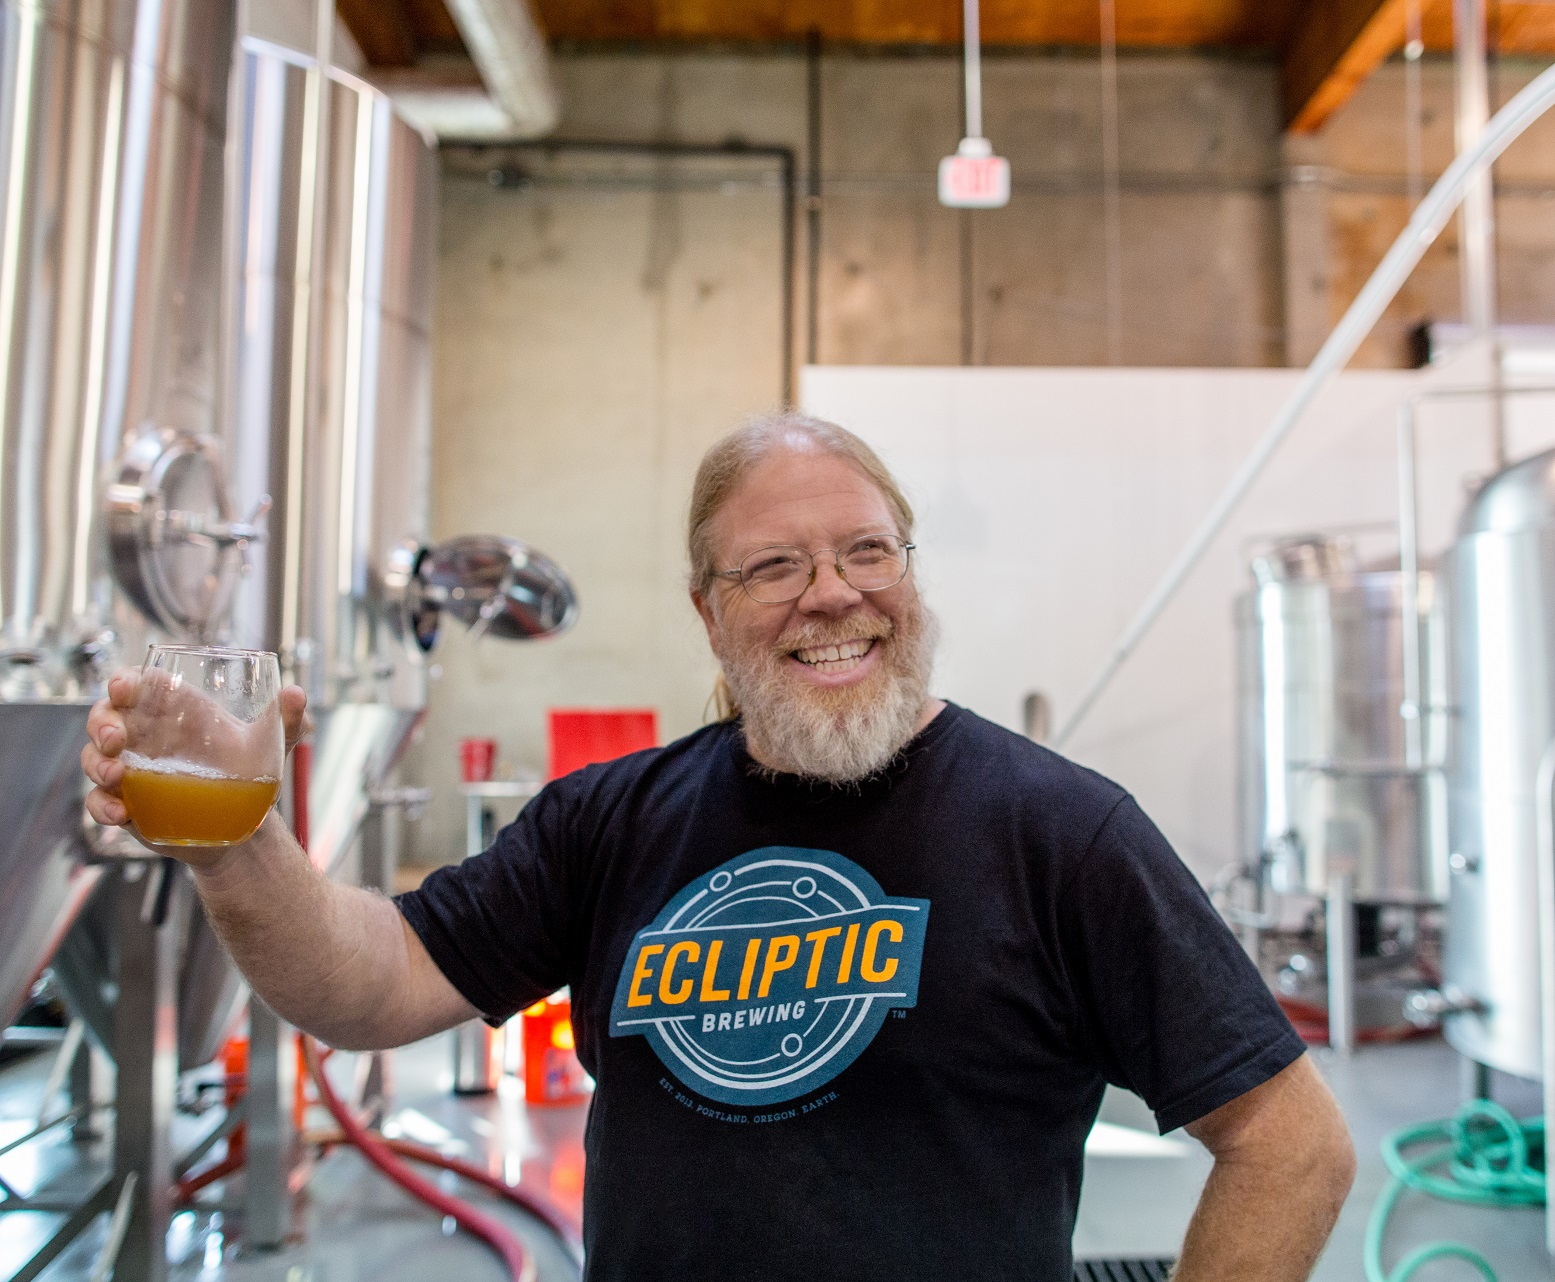 john_harris_ecliptic_brewing.jpg